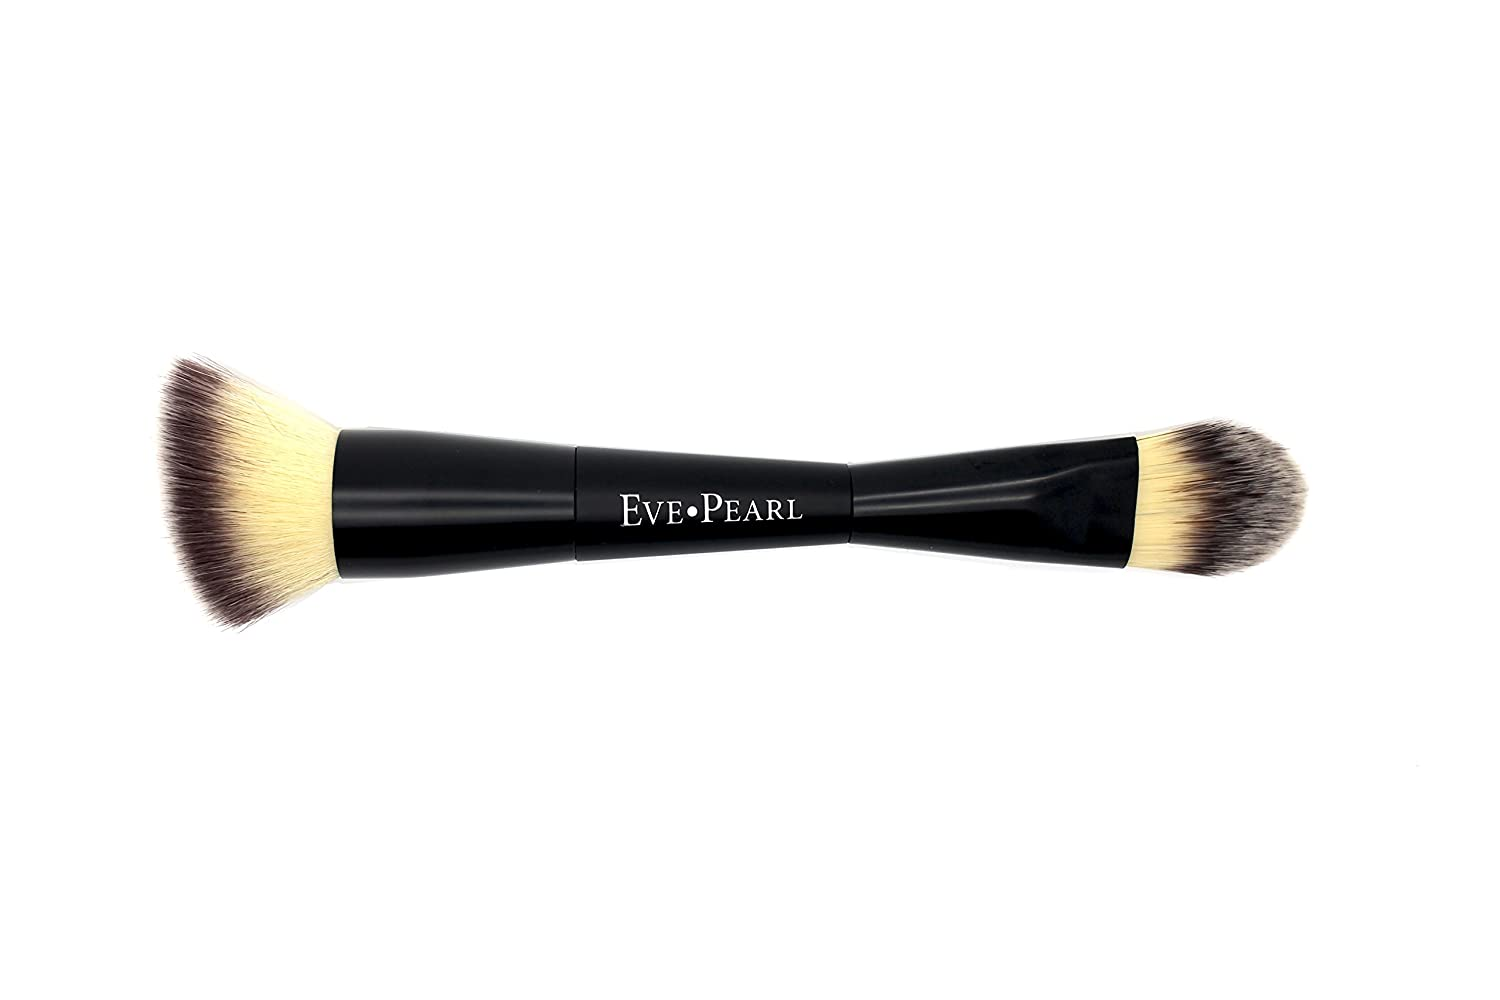 EVE PEARL Dual Brush Crease Blender Fan Highlighter Blush Contour Hypoallergenic Synthetic Easy Control And Blend Makeup Brushes 201 Contour Blender